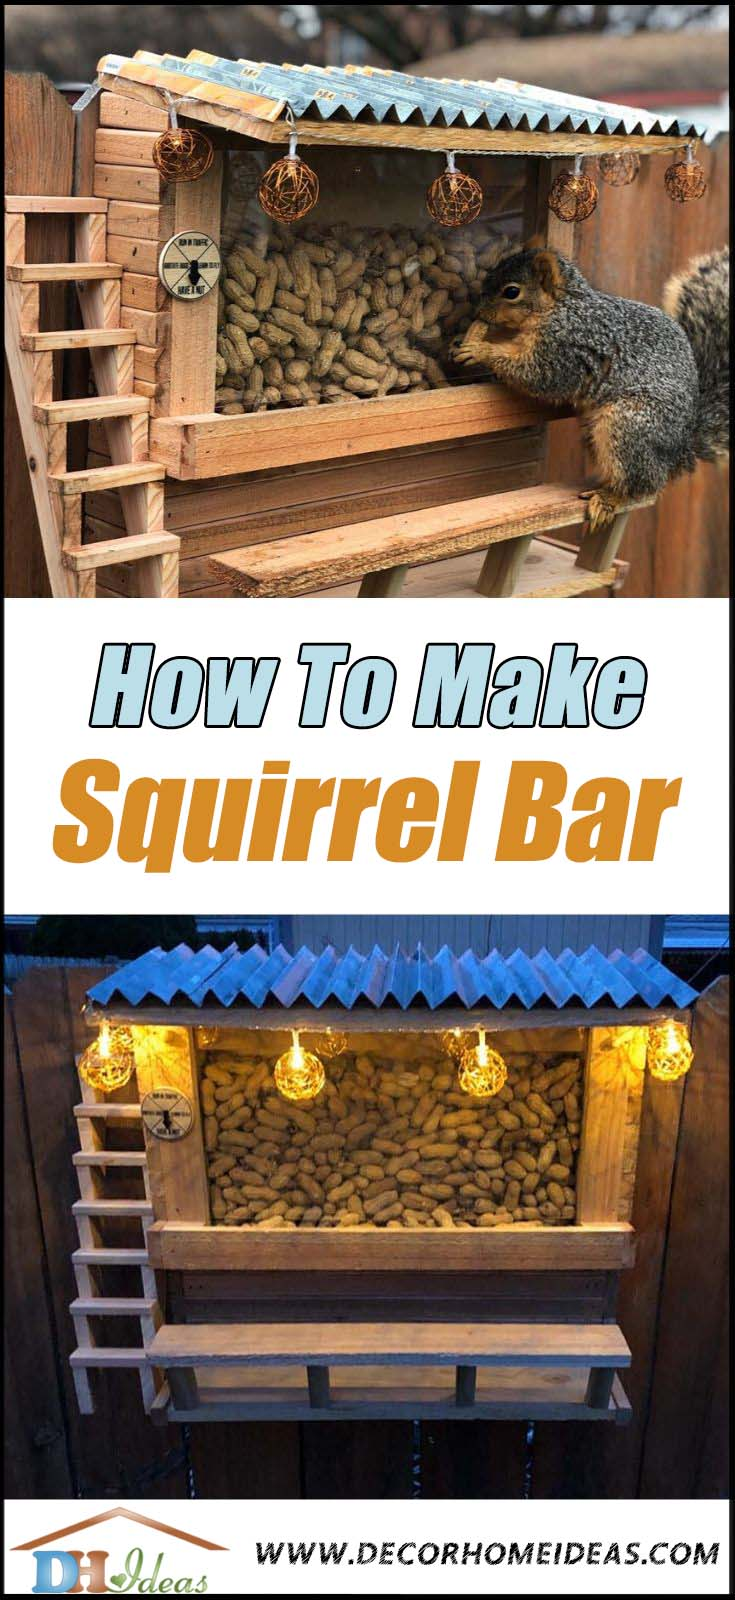 How To Make Squirrel Bar. This awesome DIY project was inspired by the picnic table, but it's way more sophisticated and charming. #diy # woodwork #squirrel #bar #decorhomeideas